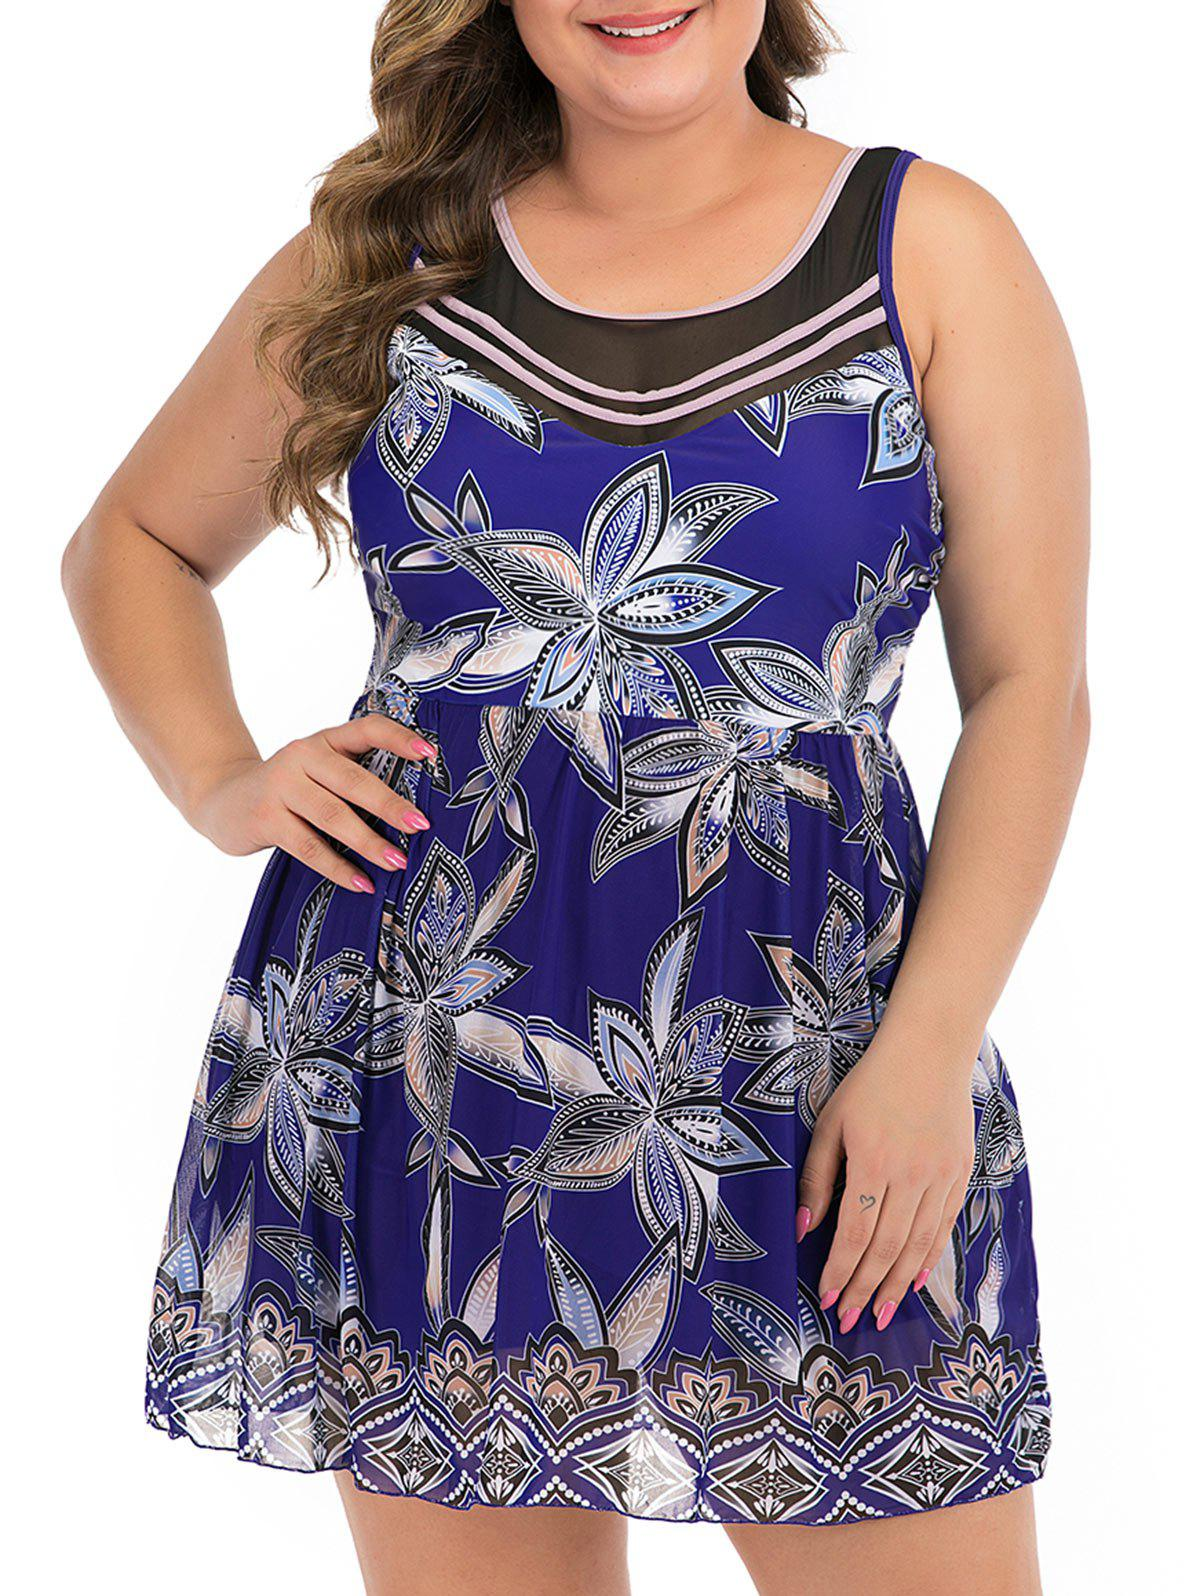 Floral Mesh Panel Tie Back Plus Size Skirted Swimsuit - BLUE 5X